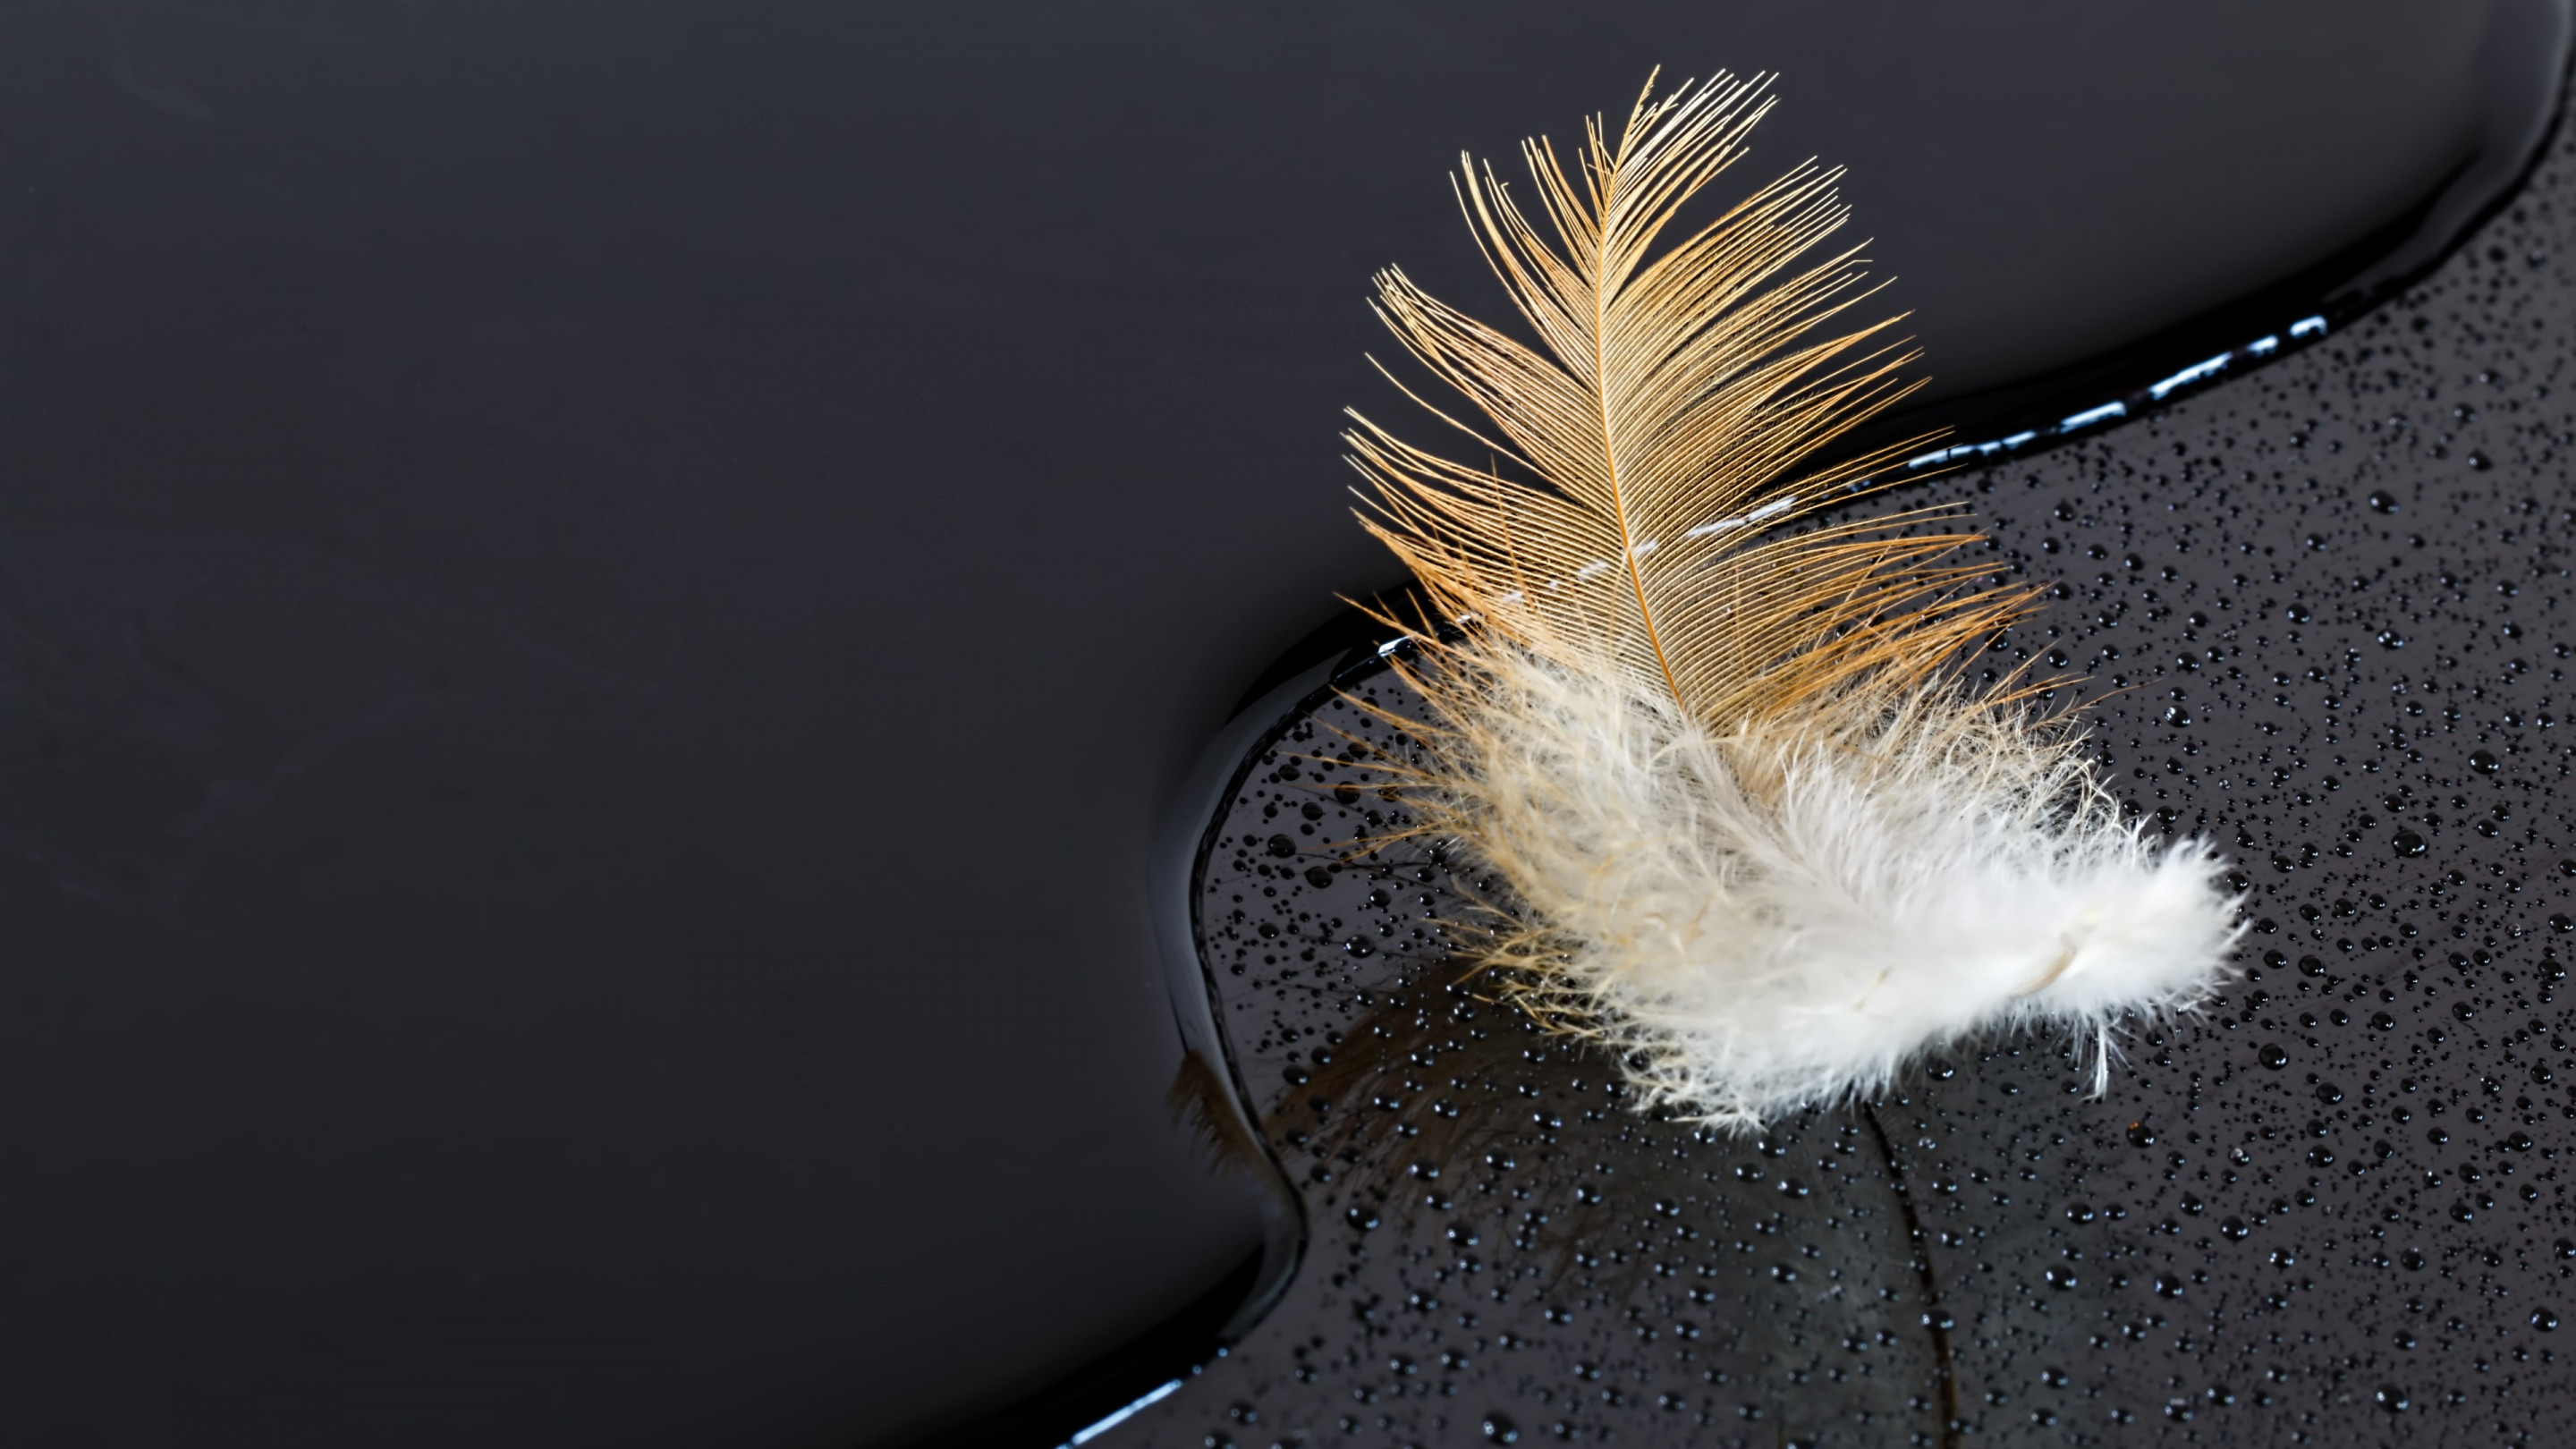 Dark surface with a feather on water wallpaper 2880x1620